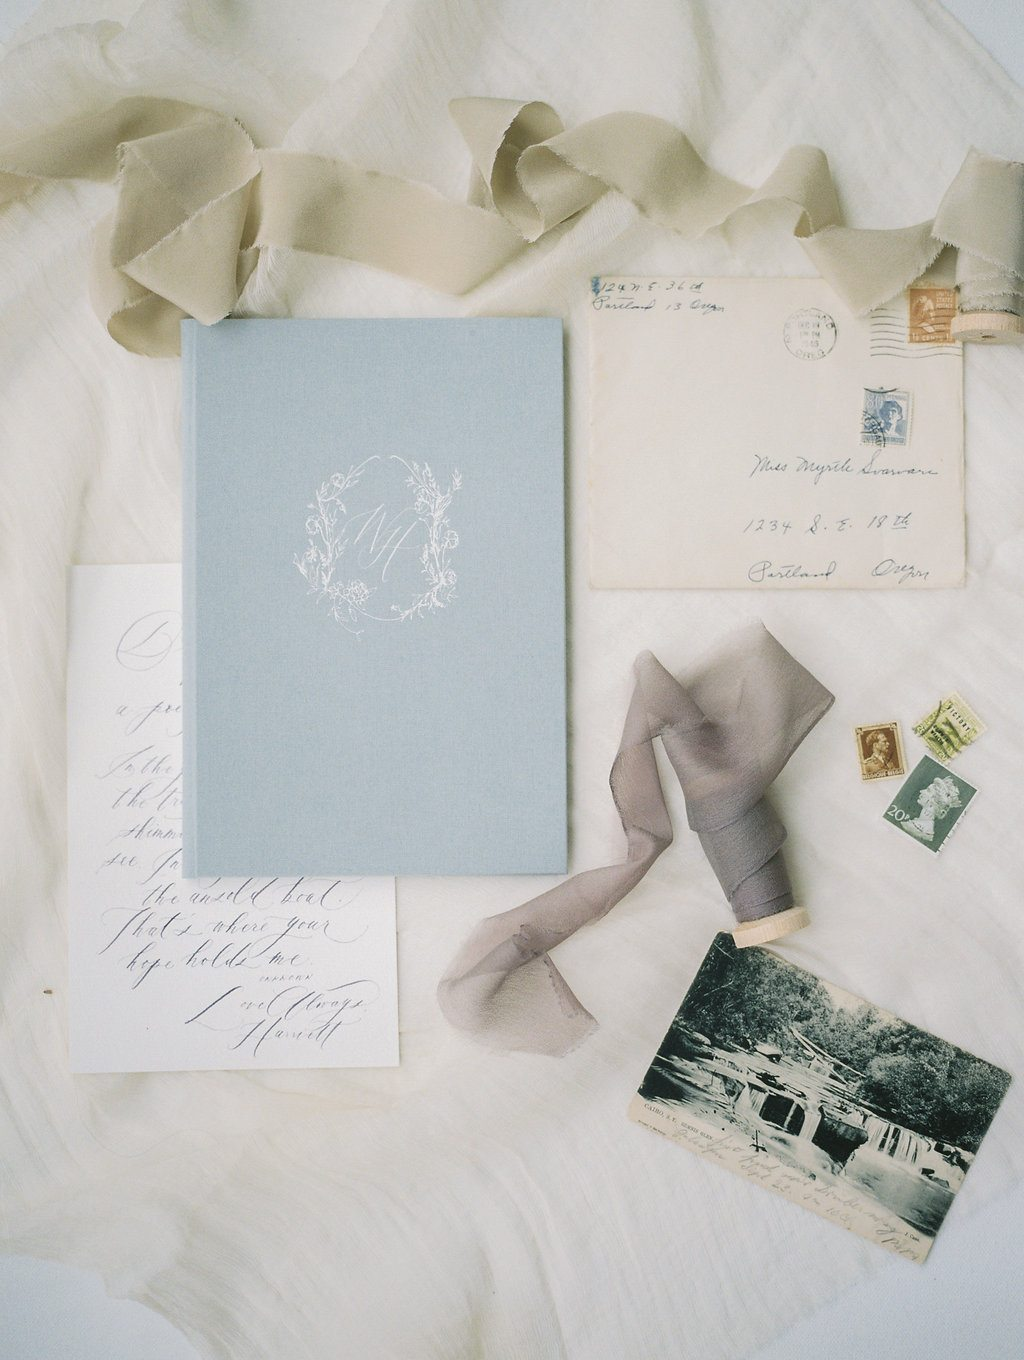 vintage letters vow book hand made wedding story writer vow books heirloom wedding items silk ribbon vintage photos love letters flatlay styling jeremy chou tristan needham design written word calligraphy monogram